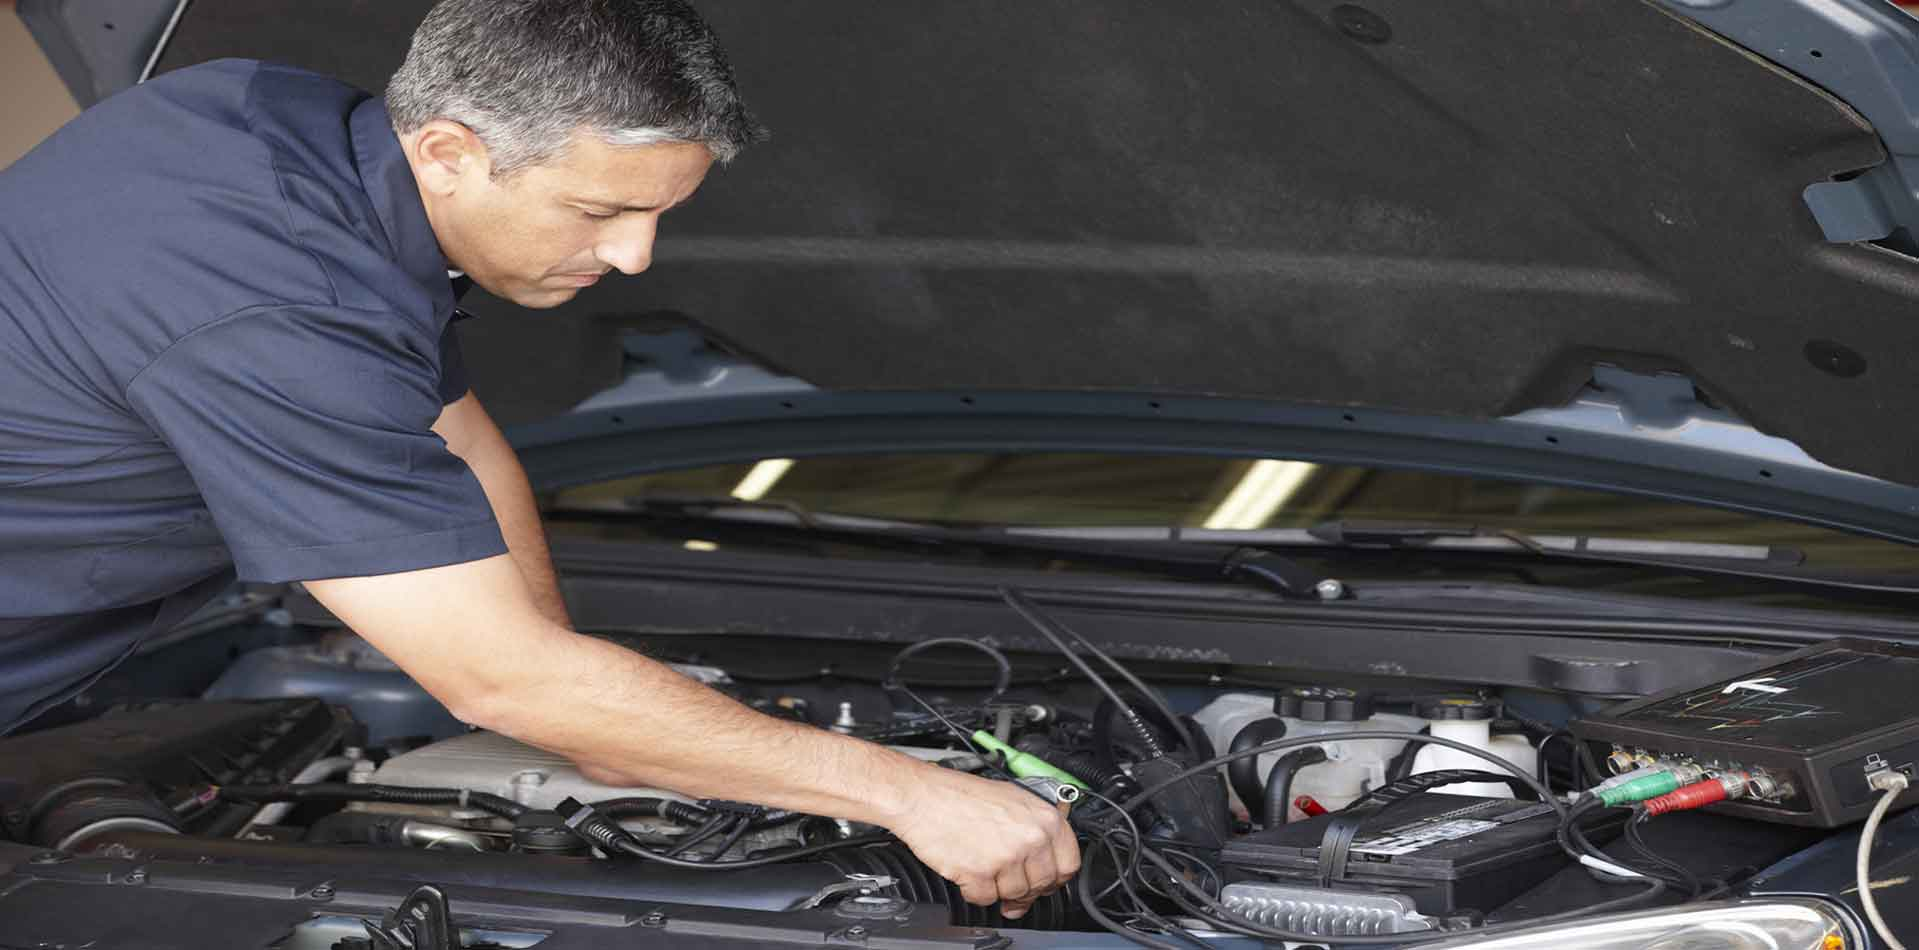 California Car Care - Quality Auto Repair in Temecula and Murrieta